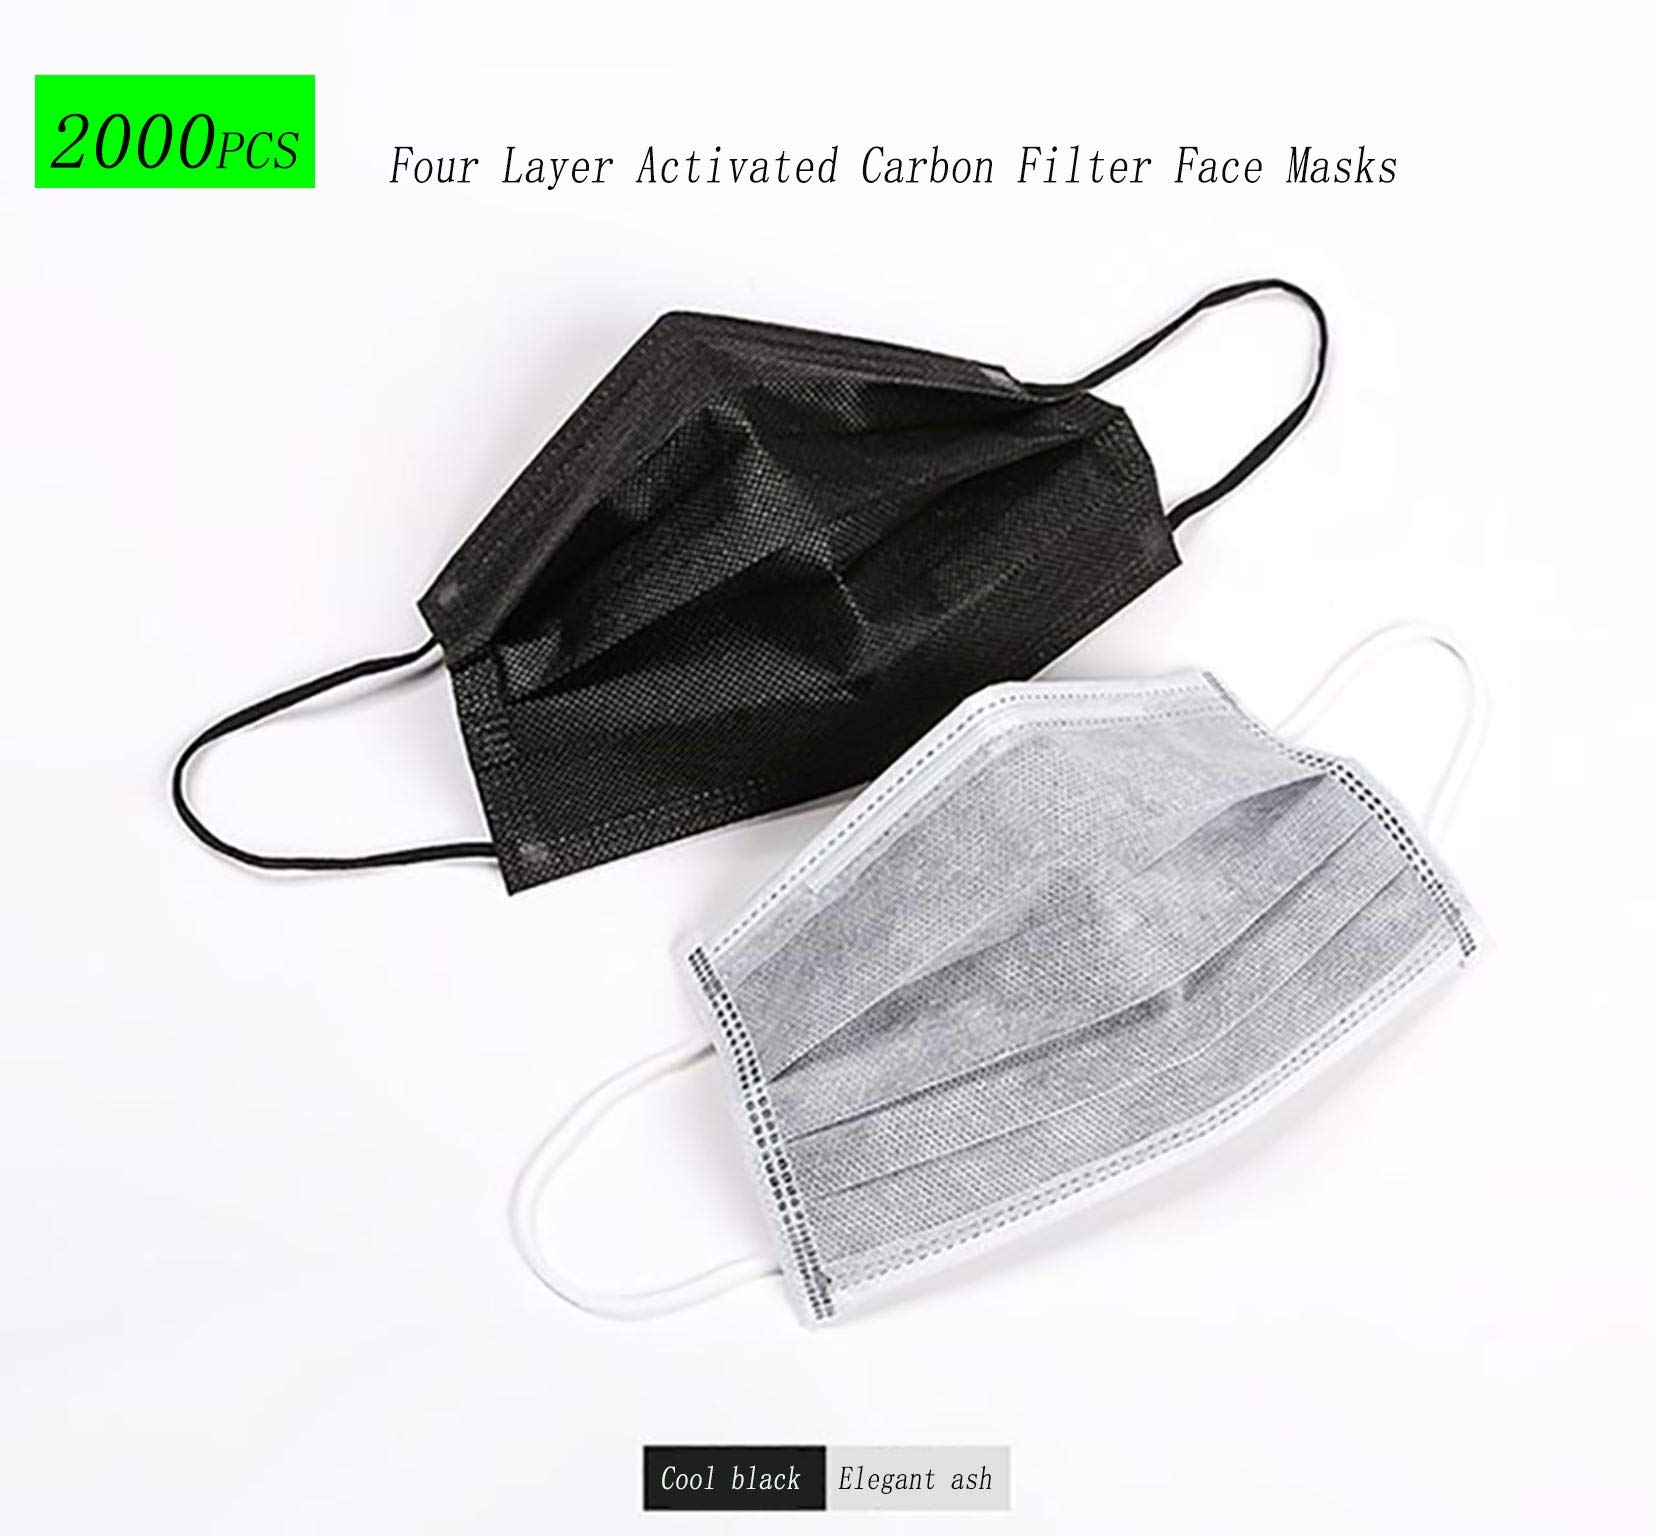 2000 pack Disposable Four-layer Activated Carbon Mask With Elastic Earrings for Pollen, Allergies, Cold, Dust, Flu, Bacteria, Breathability and Comfort